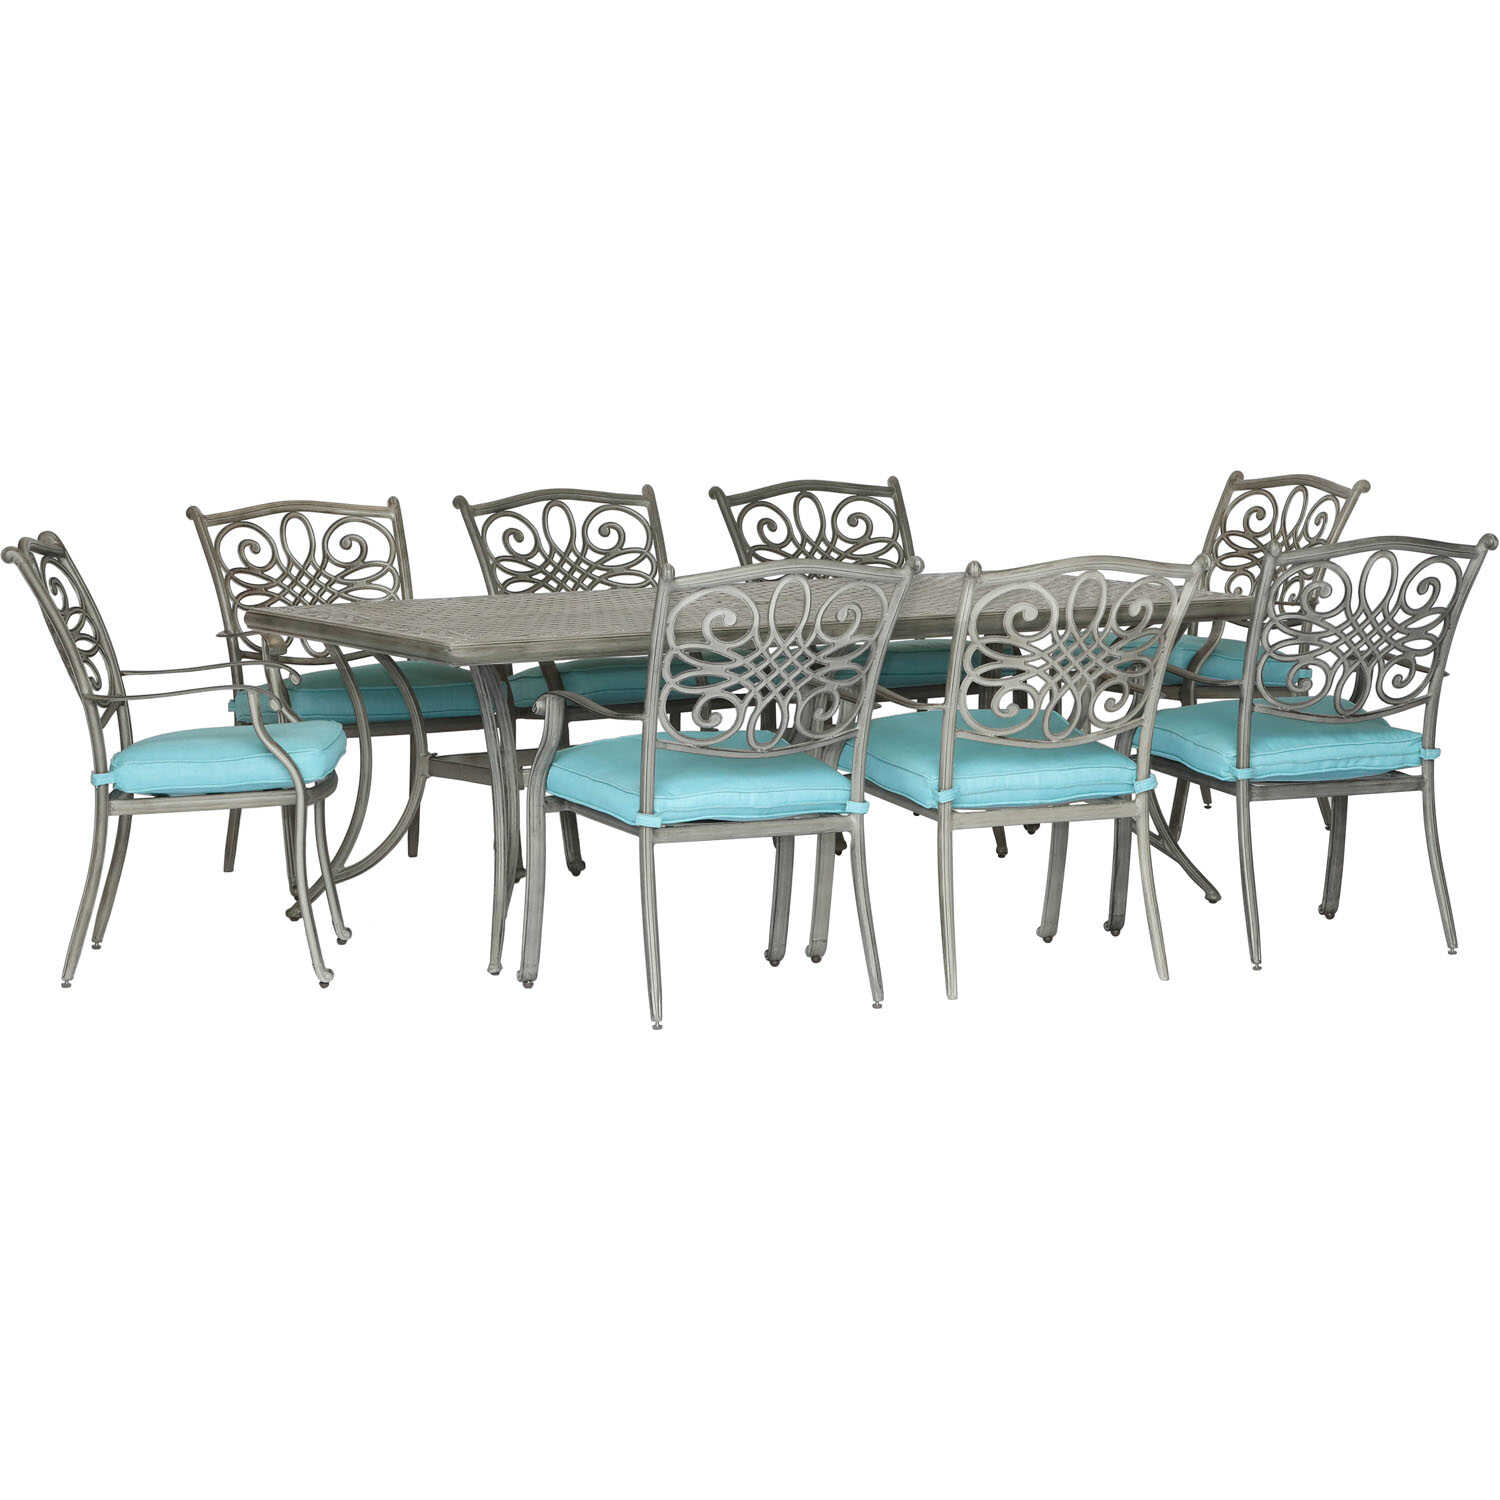 Hanover  Traditions  9 pc. Bronze  Aluminum  Patio Set  Blue